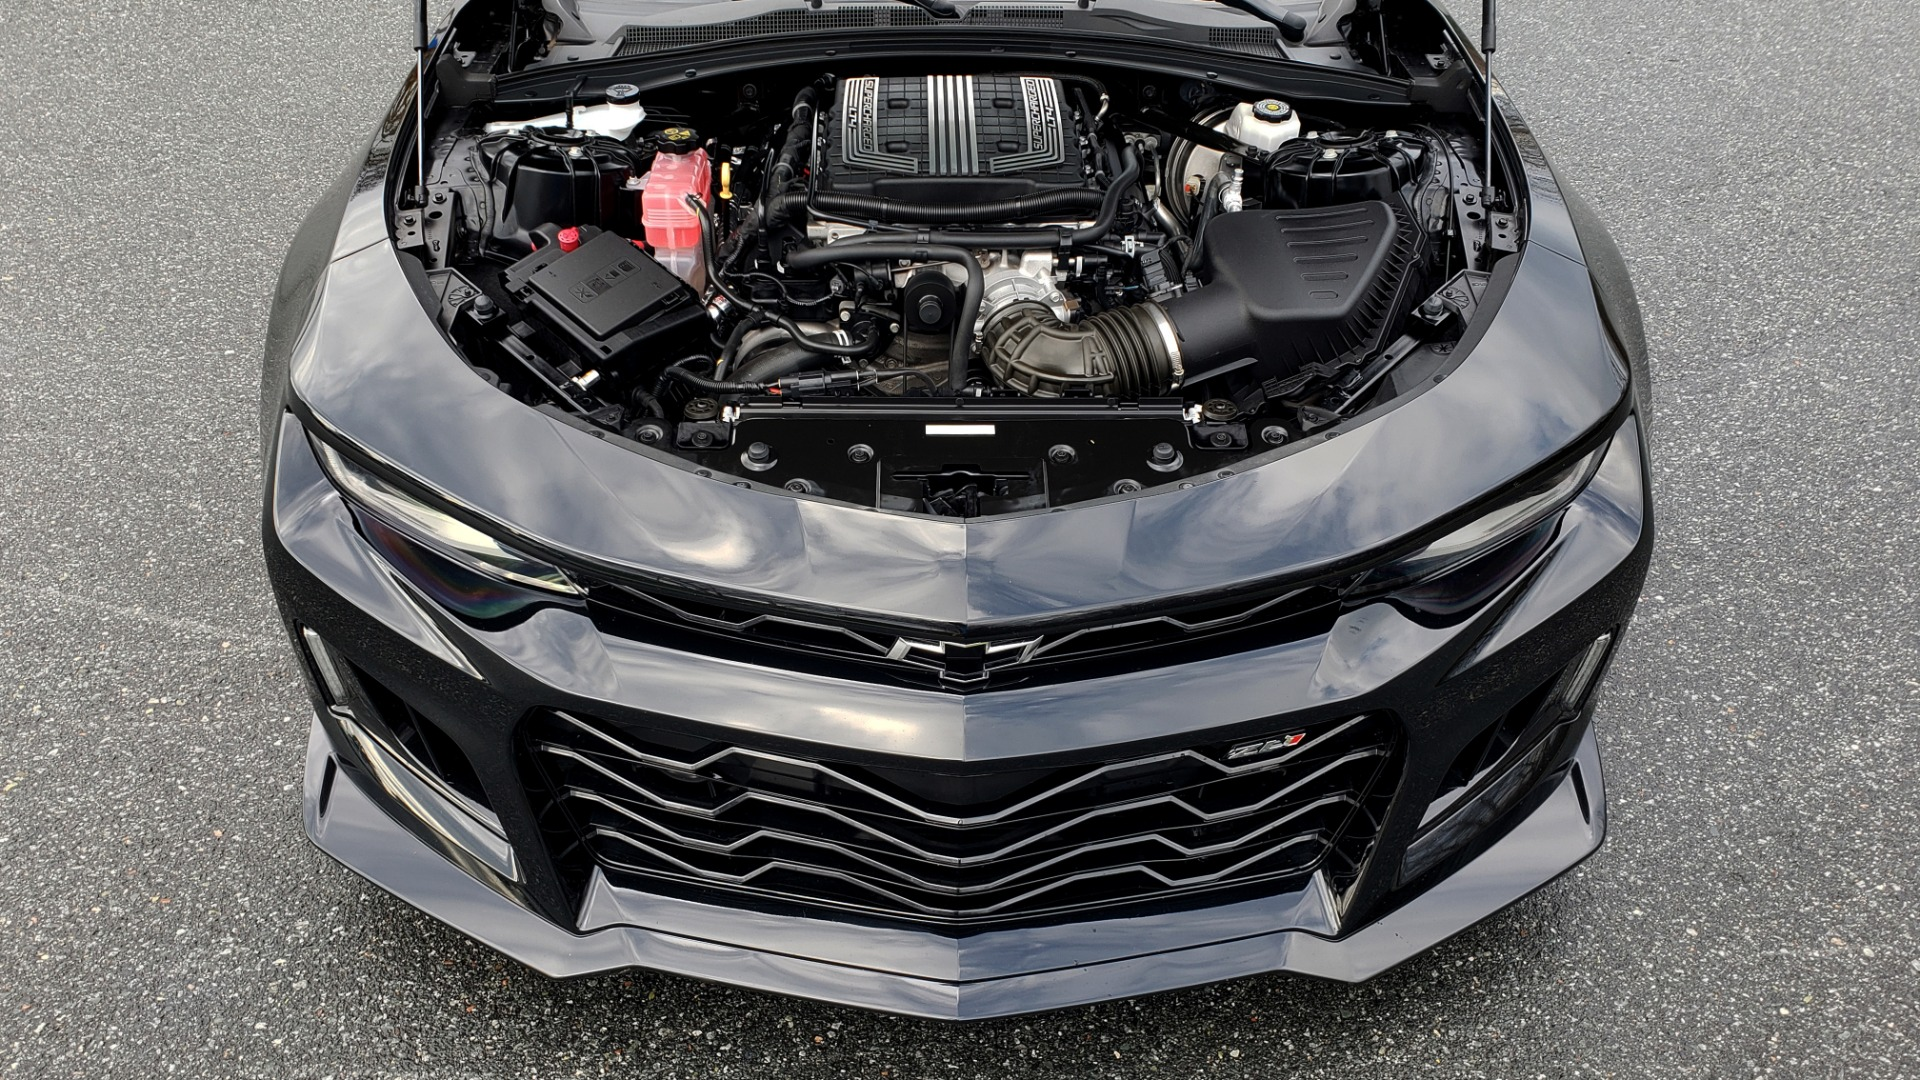 Used 2018 Chevrolet CAMARO ZL1 6.2L SUPERCHARGED V8 650 / NAV / SUNROOF / REARVIEW for sale Sold at Formula Imports in Charlotte NC 28227 16